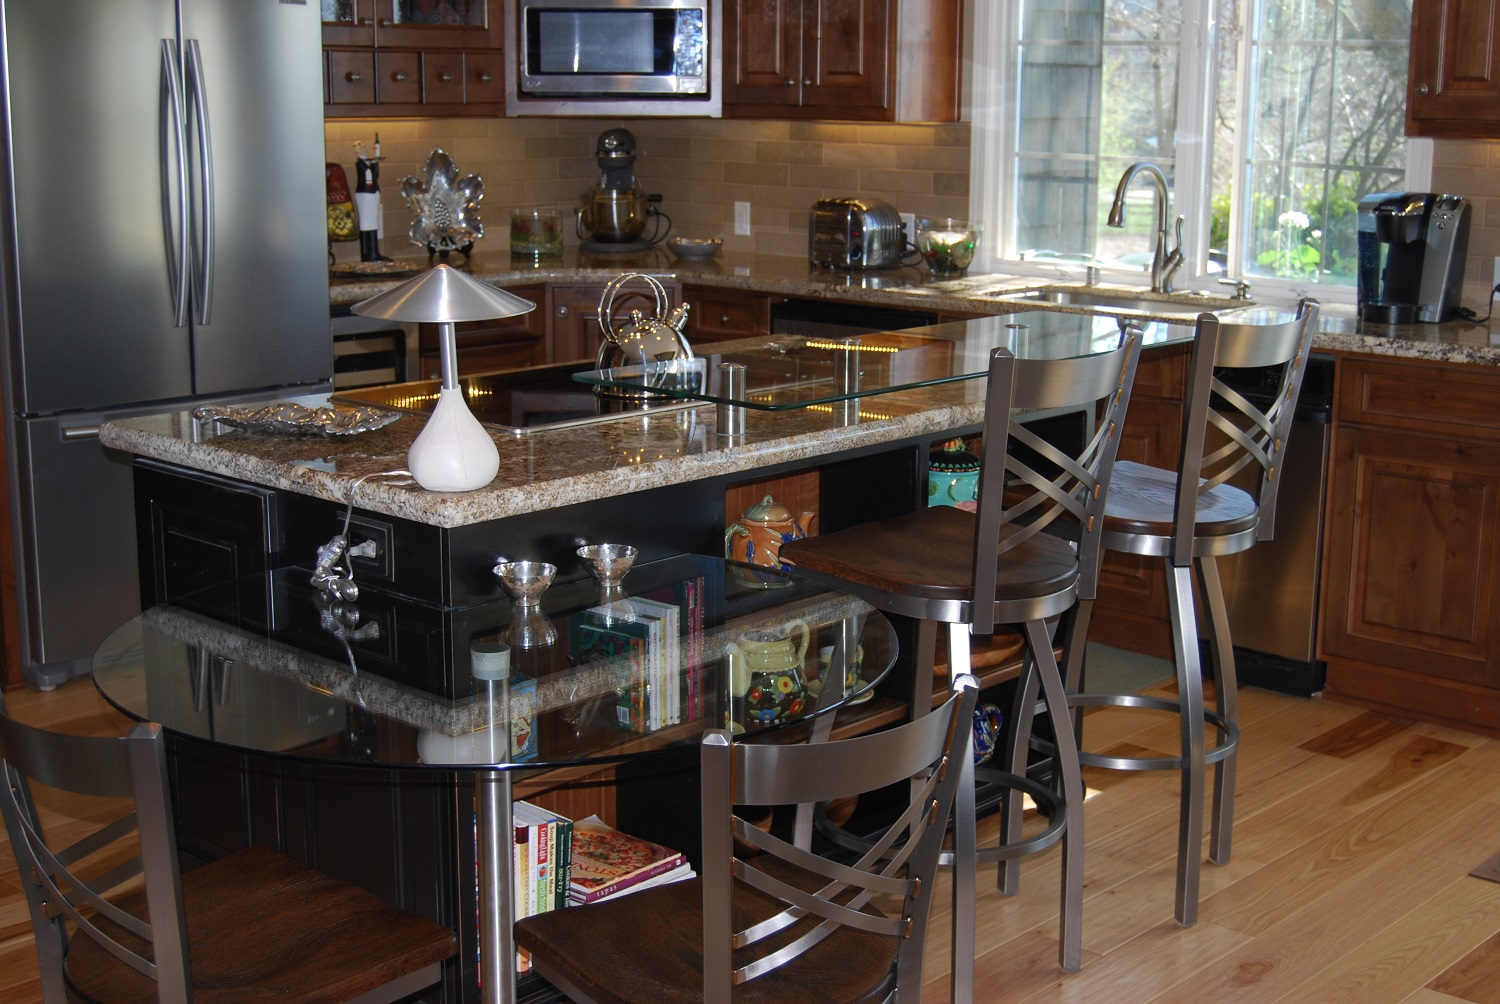 glass counter bar extension, circular glass table, attached glass table, knotty hickory floors